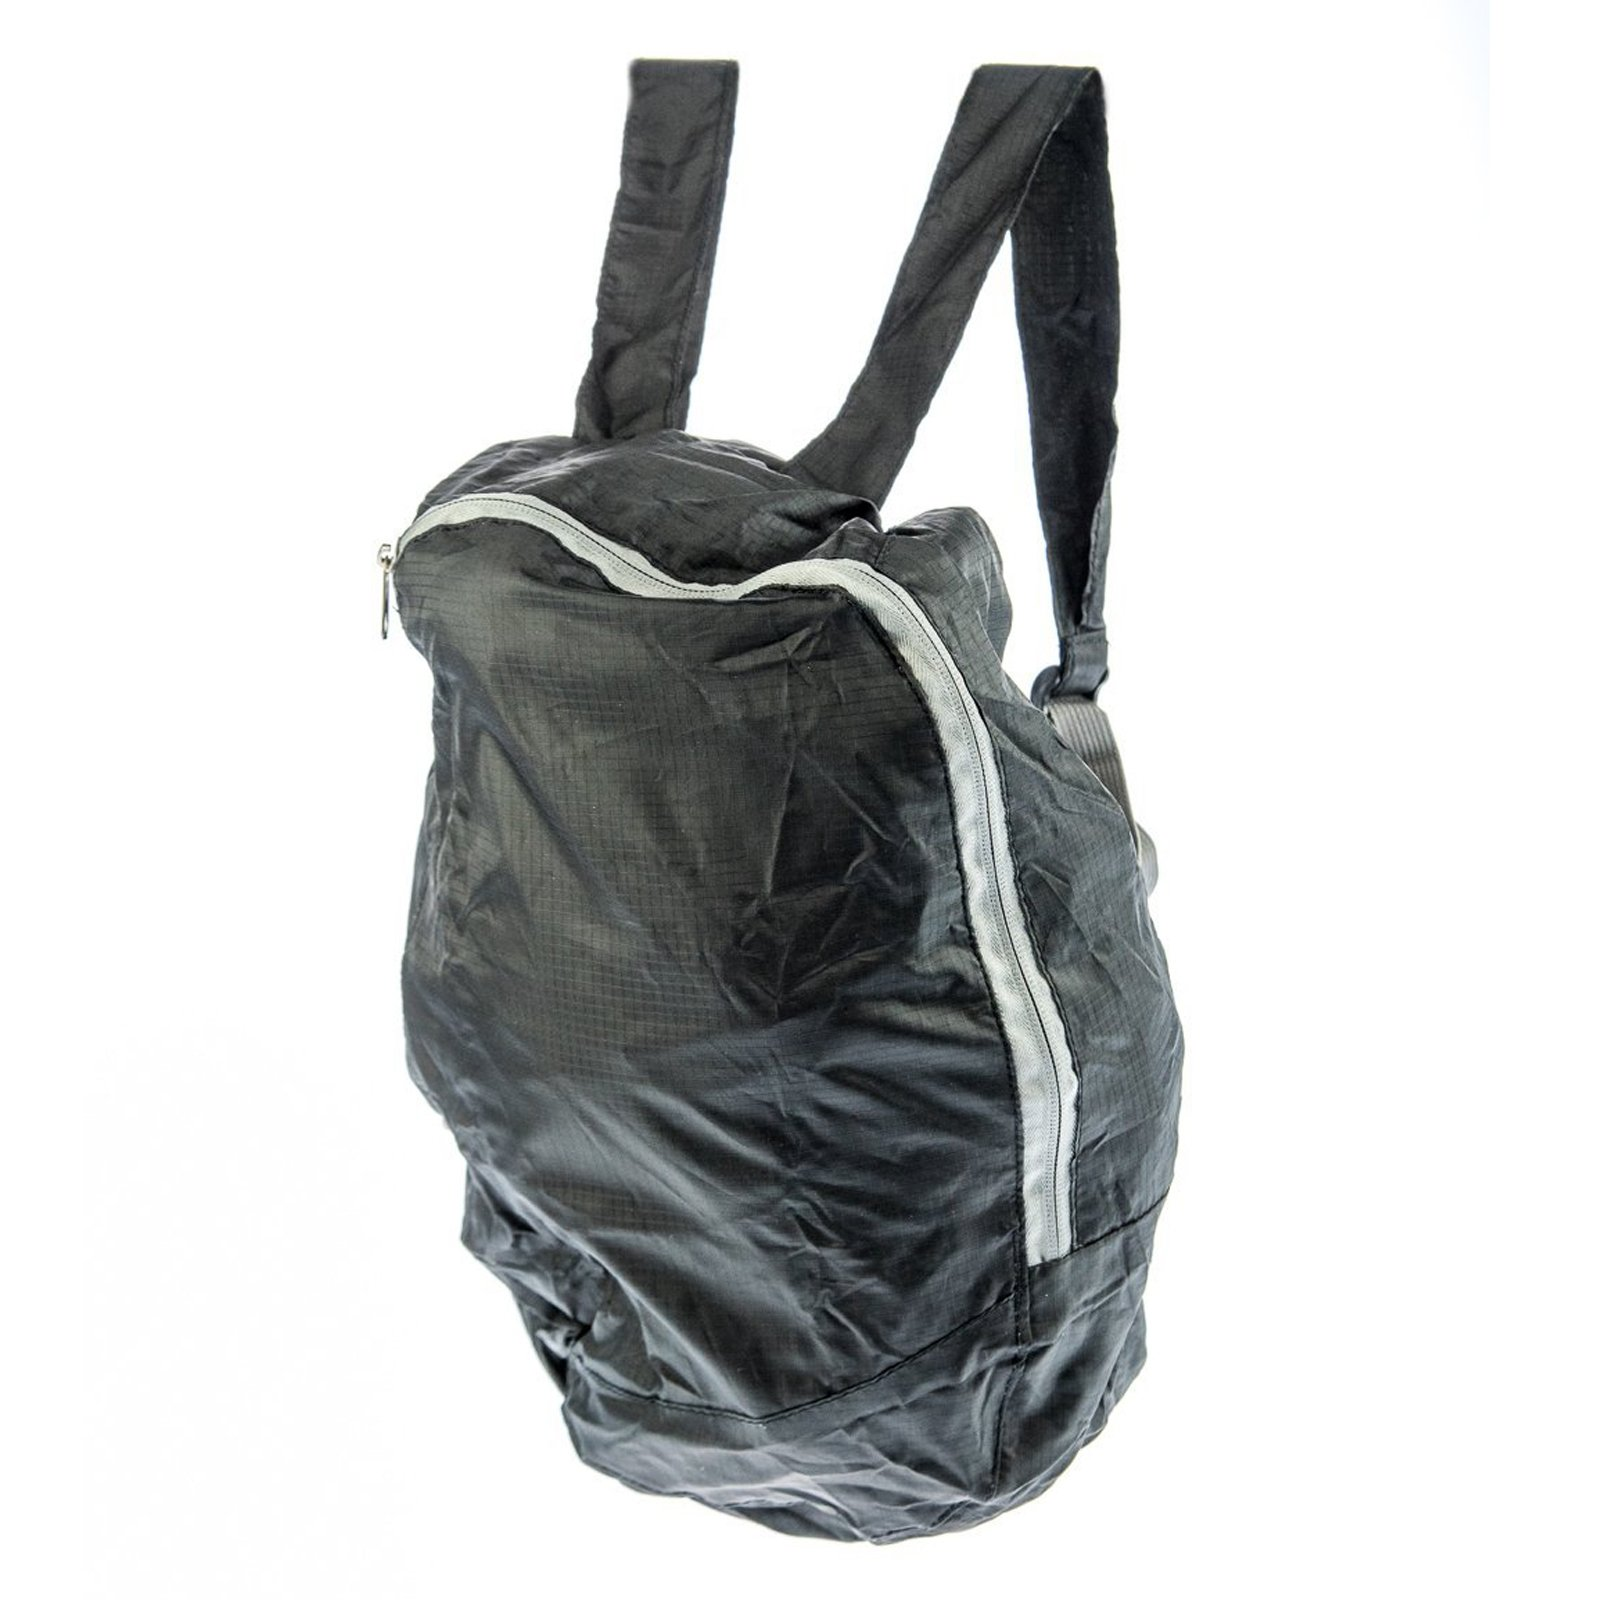 ASR Outdoor Water Resistant Collapsible Day Pack - Black